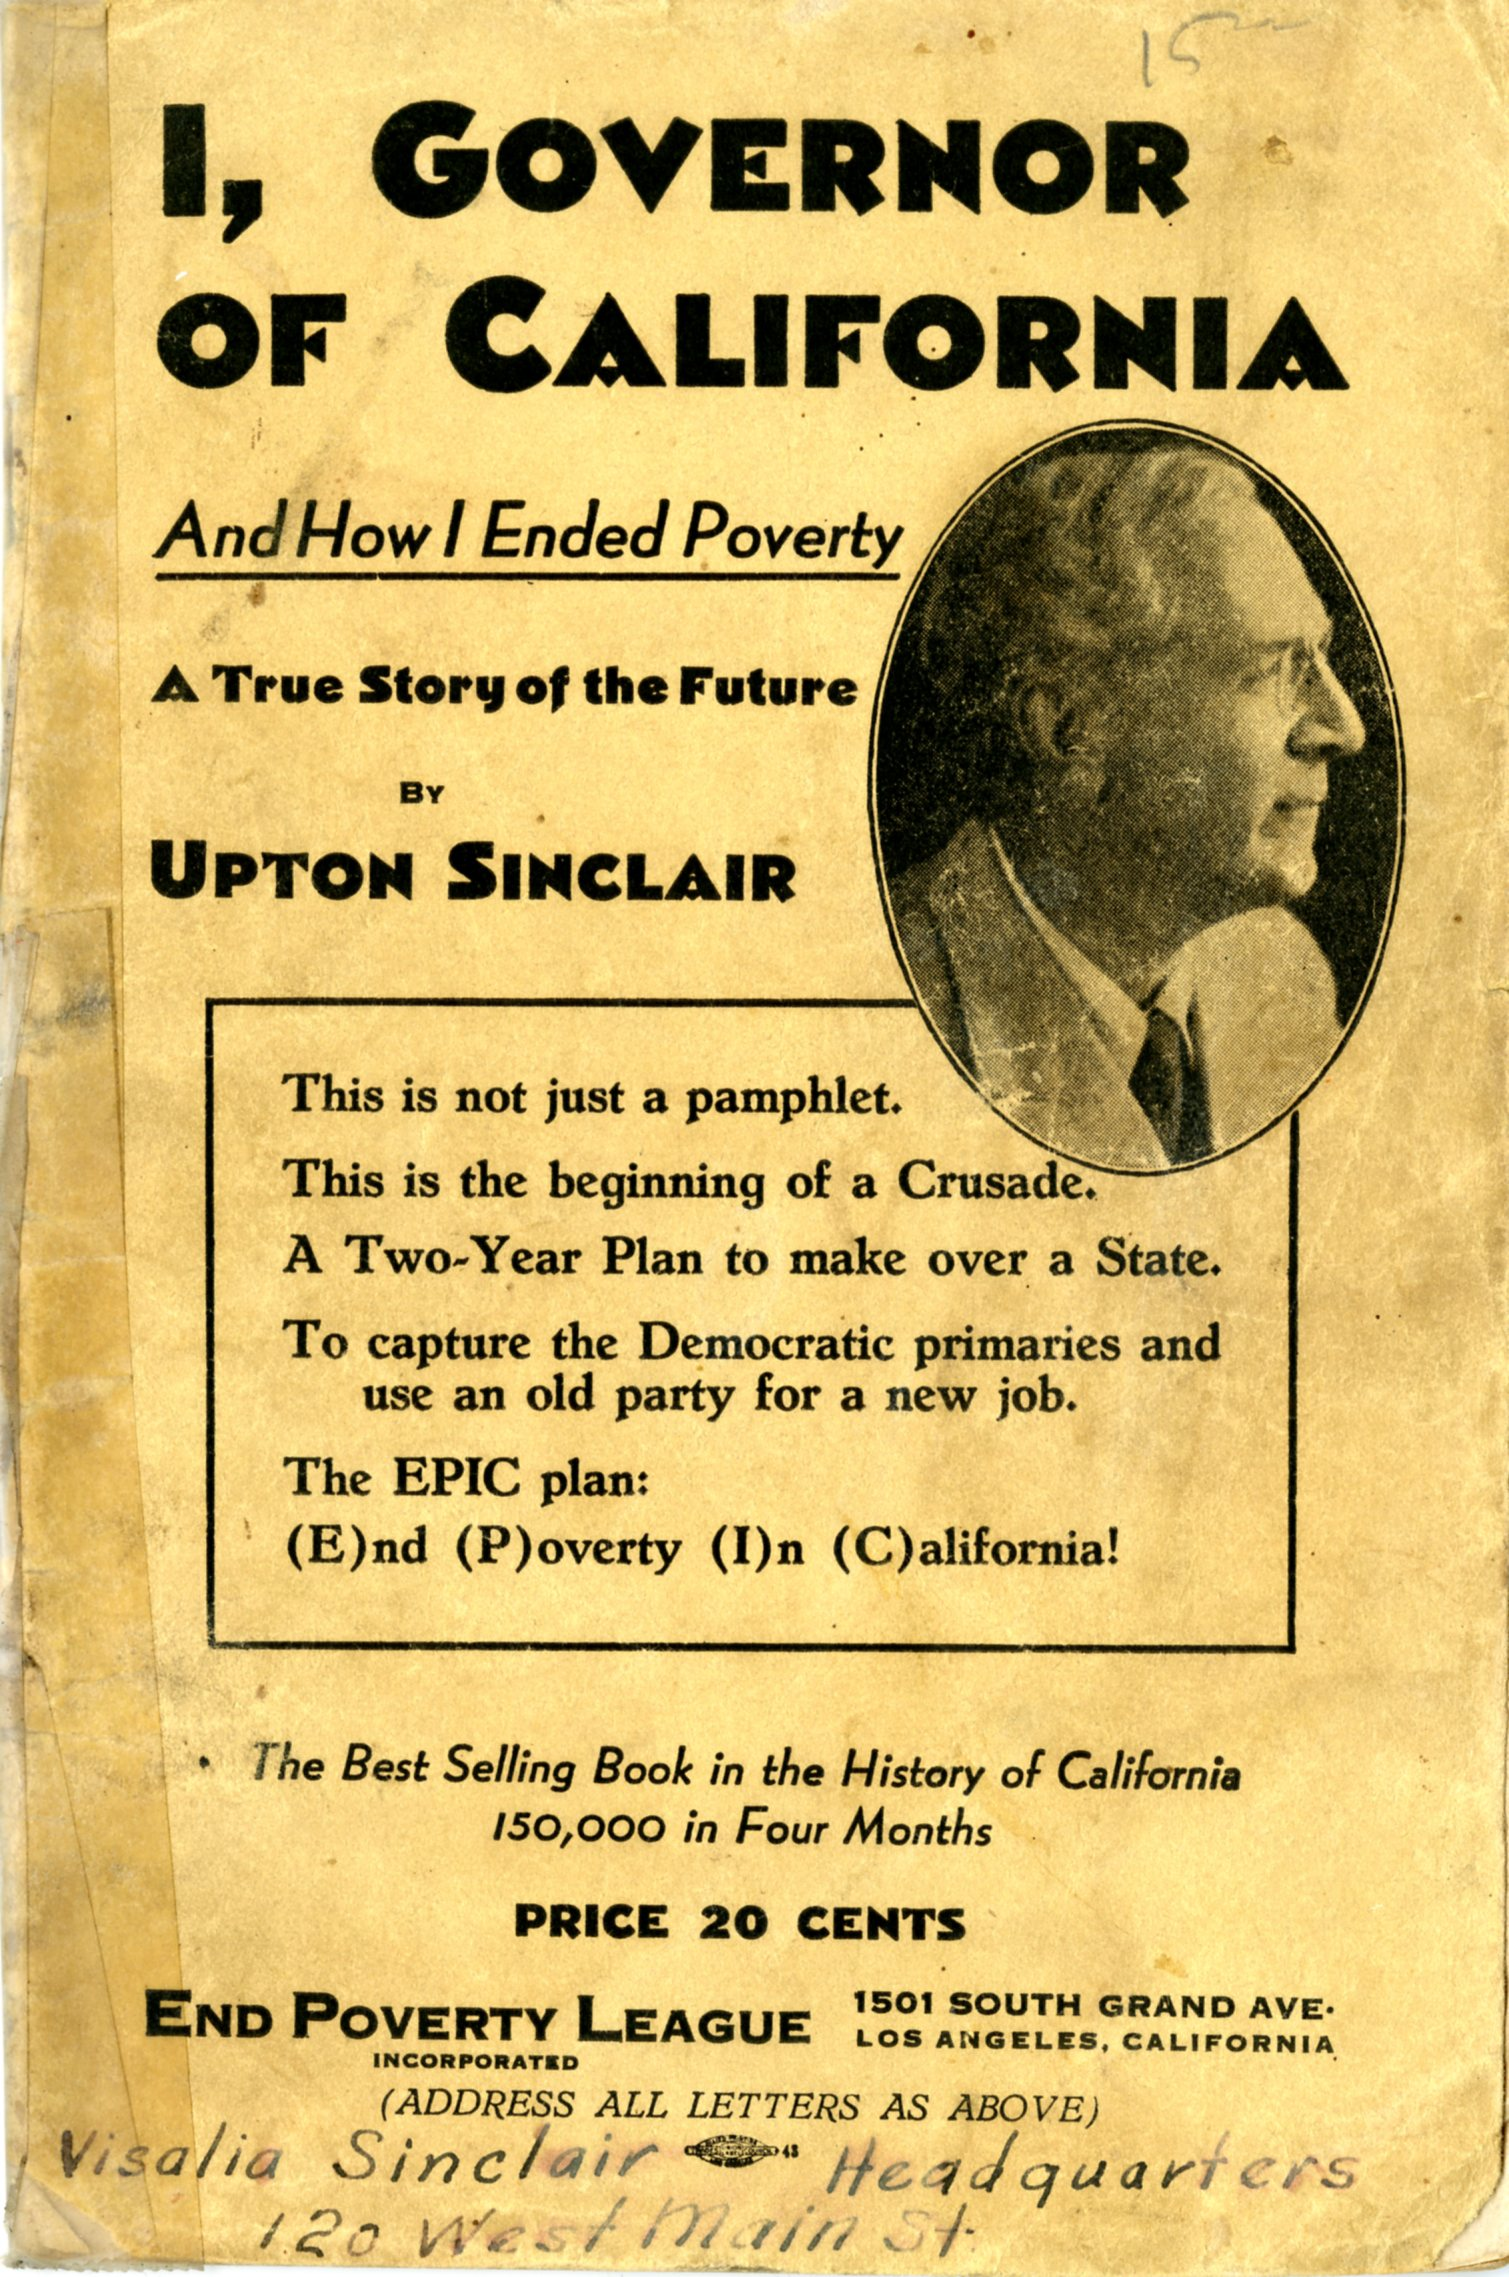 Governor of California campaign flyer by Upton Sinclair